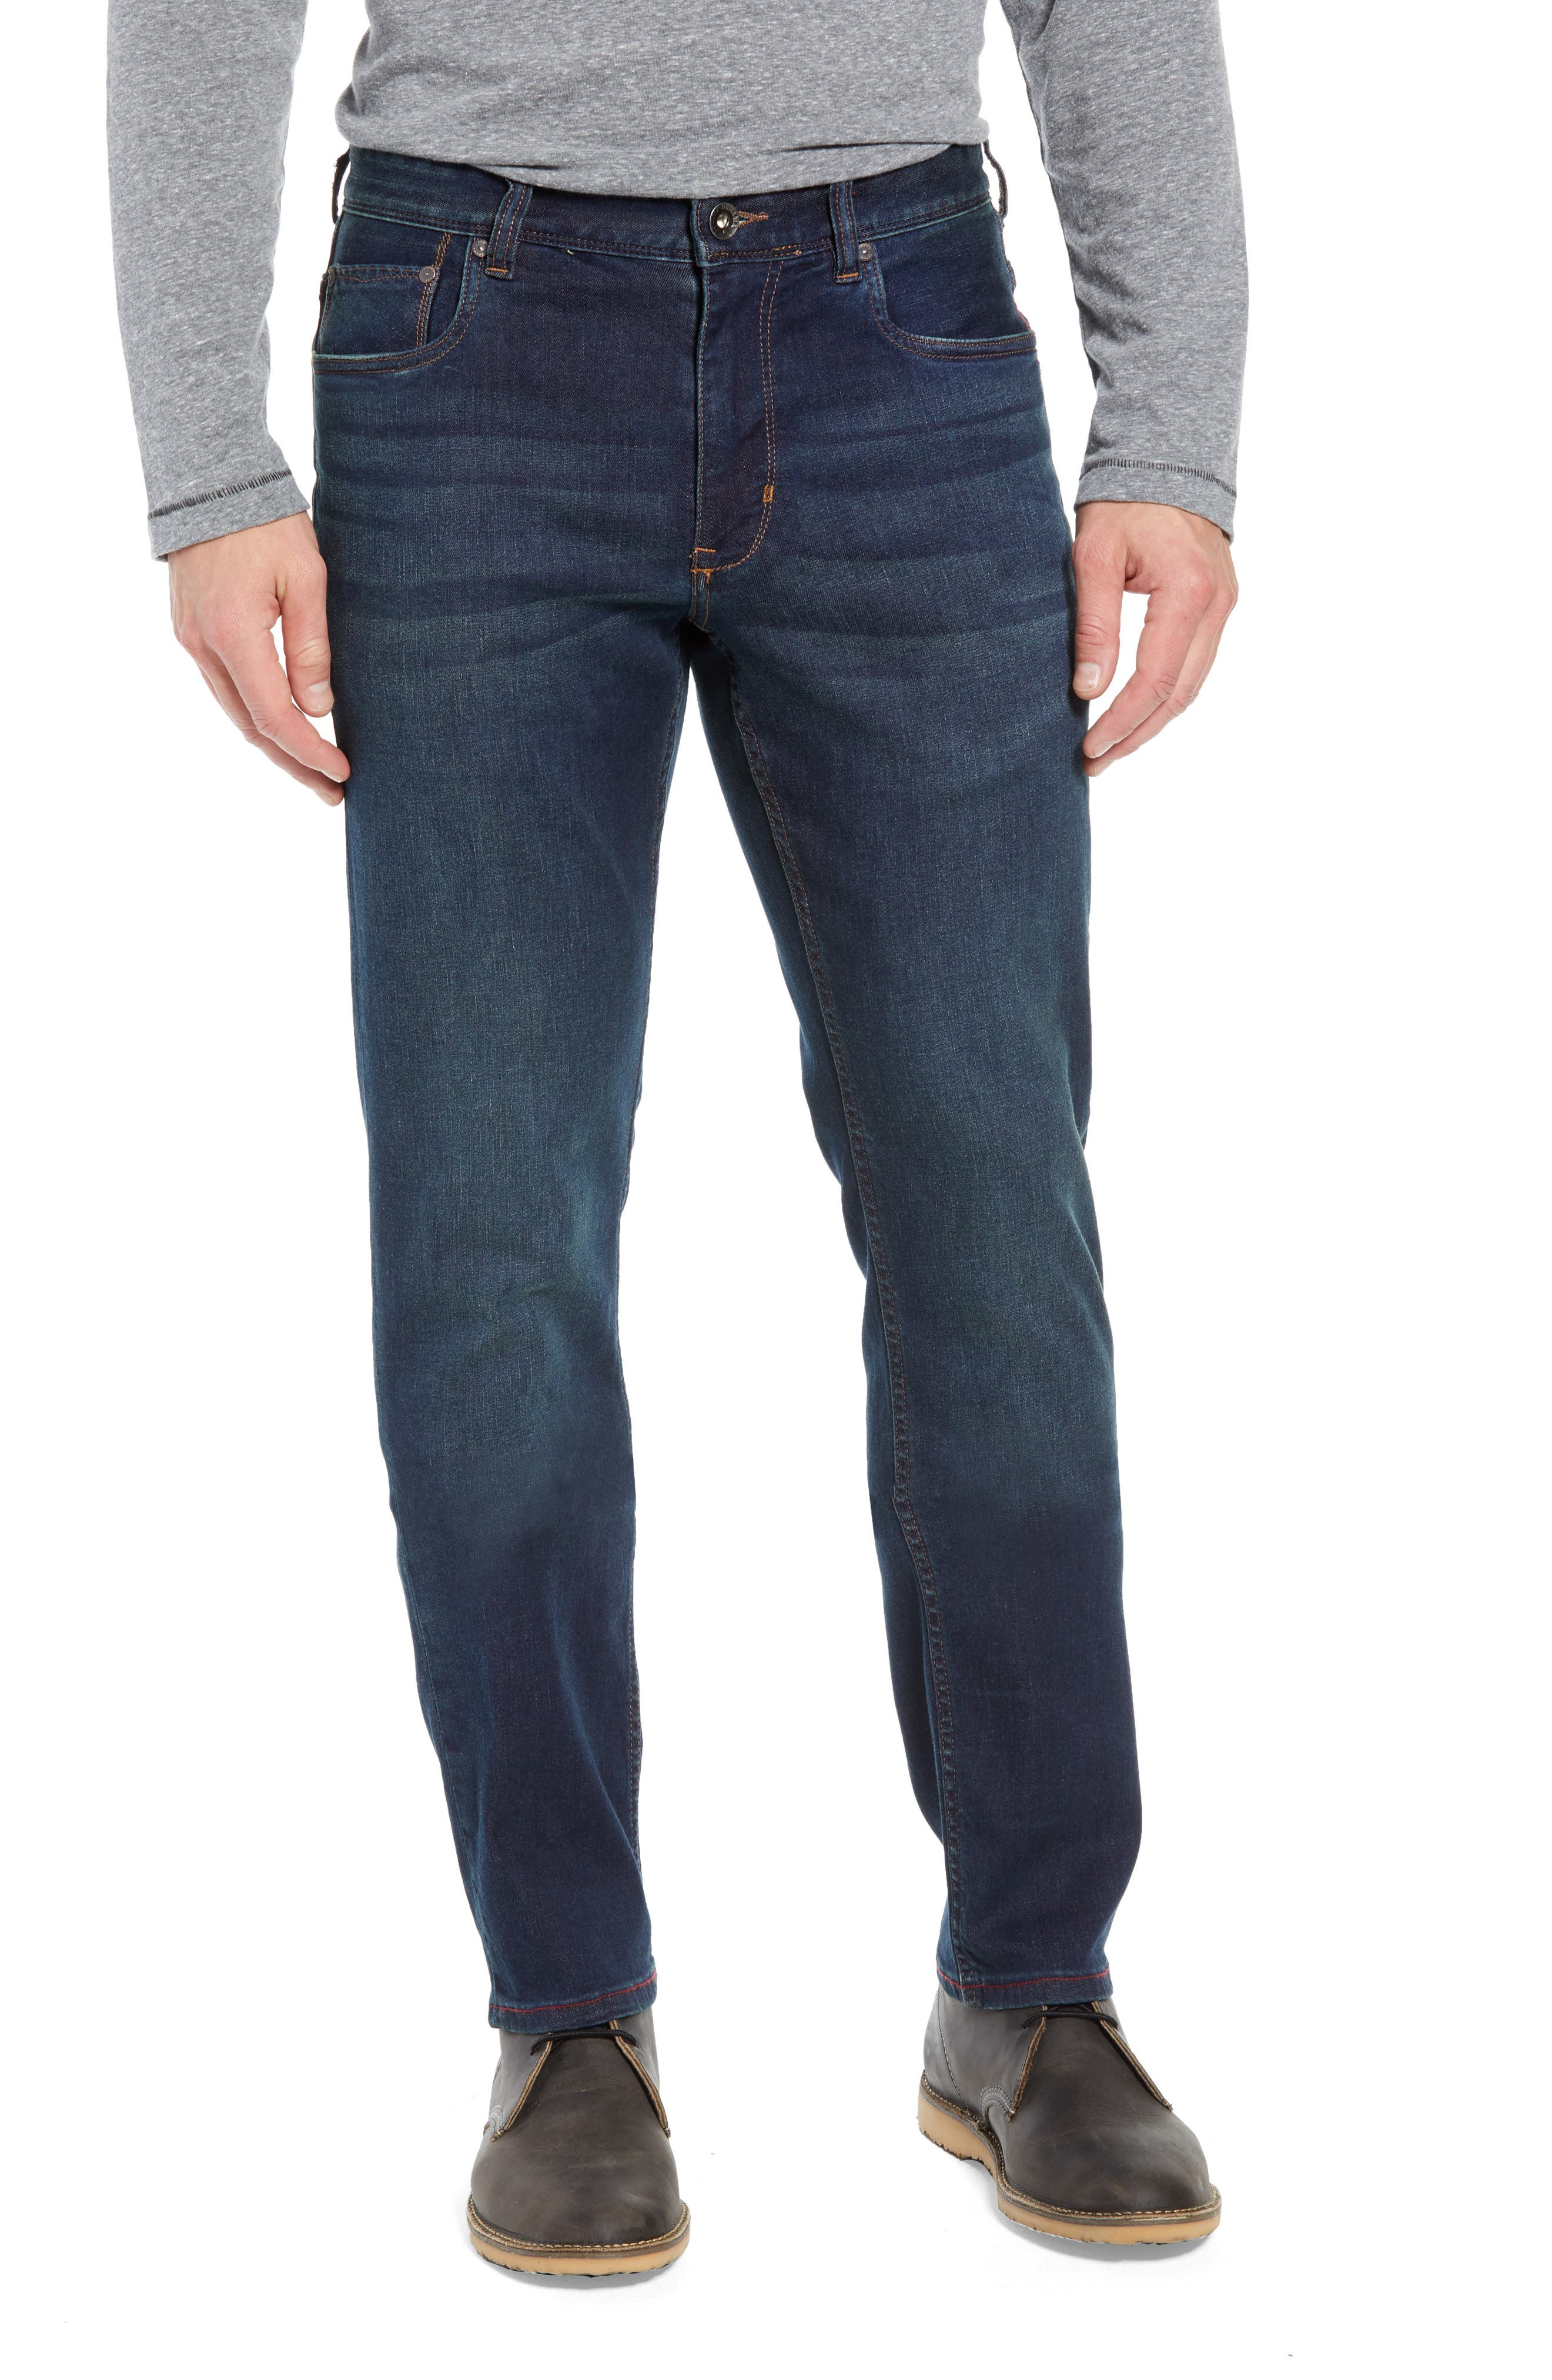 Costa Rica Vintage Regular Fit Jeans,                             Main thumbnail 1, color,                             RINSE WASH